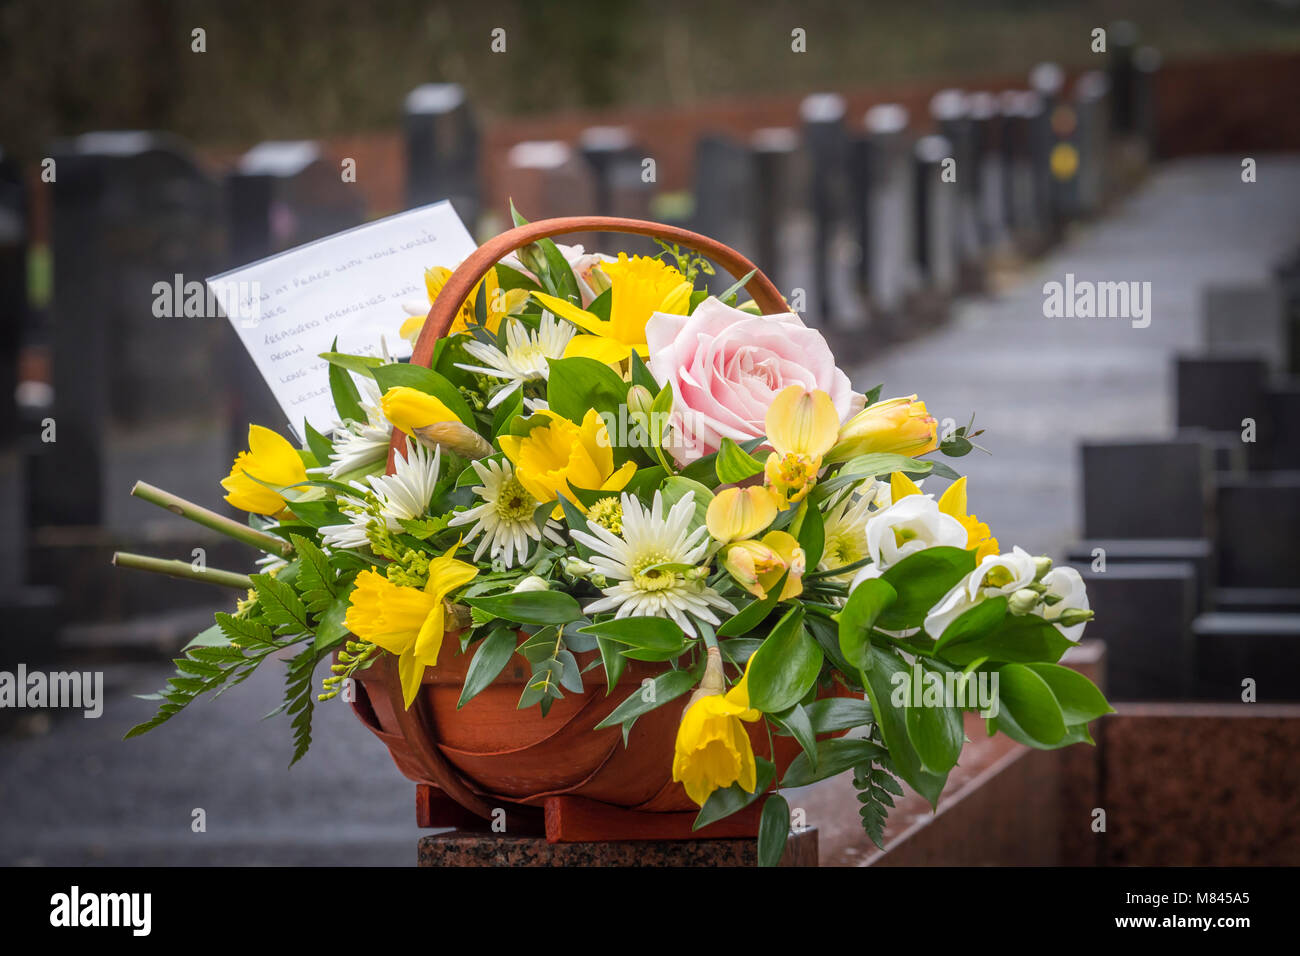 Daffodil funeral flowers images flower wallpaper hd dead daffodil flowers stock photos dead daffodil flowers stock funeral flowers at the graveside stock image izmirmasajfo Images